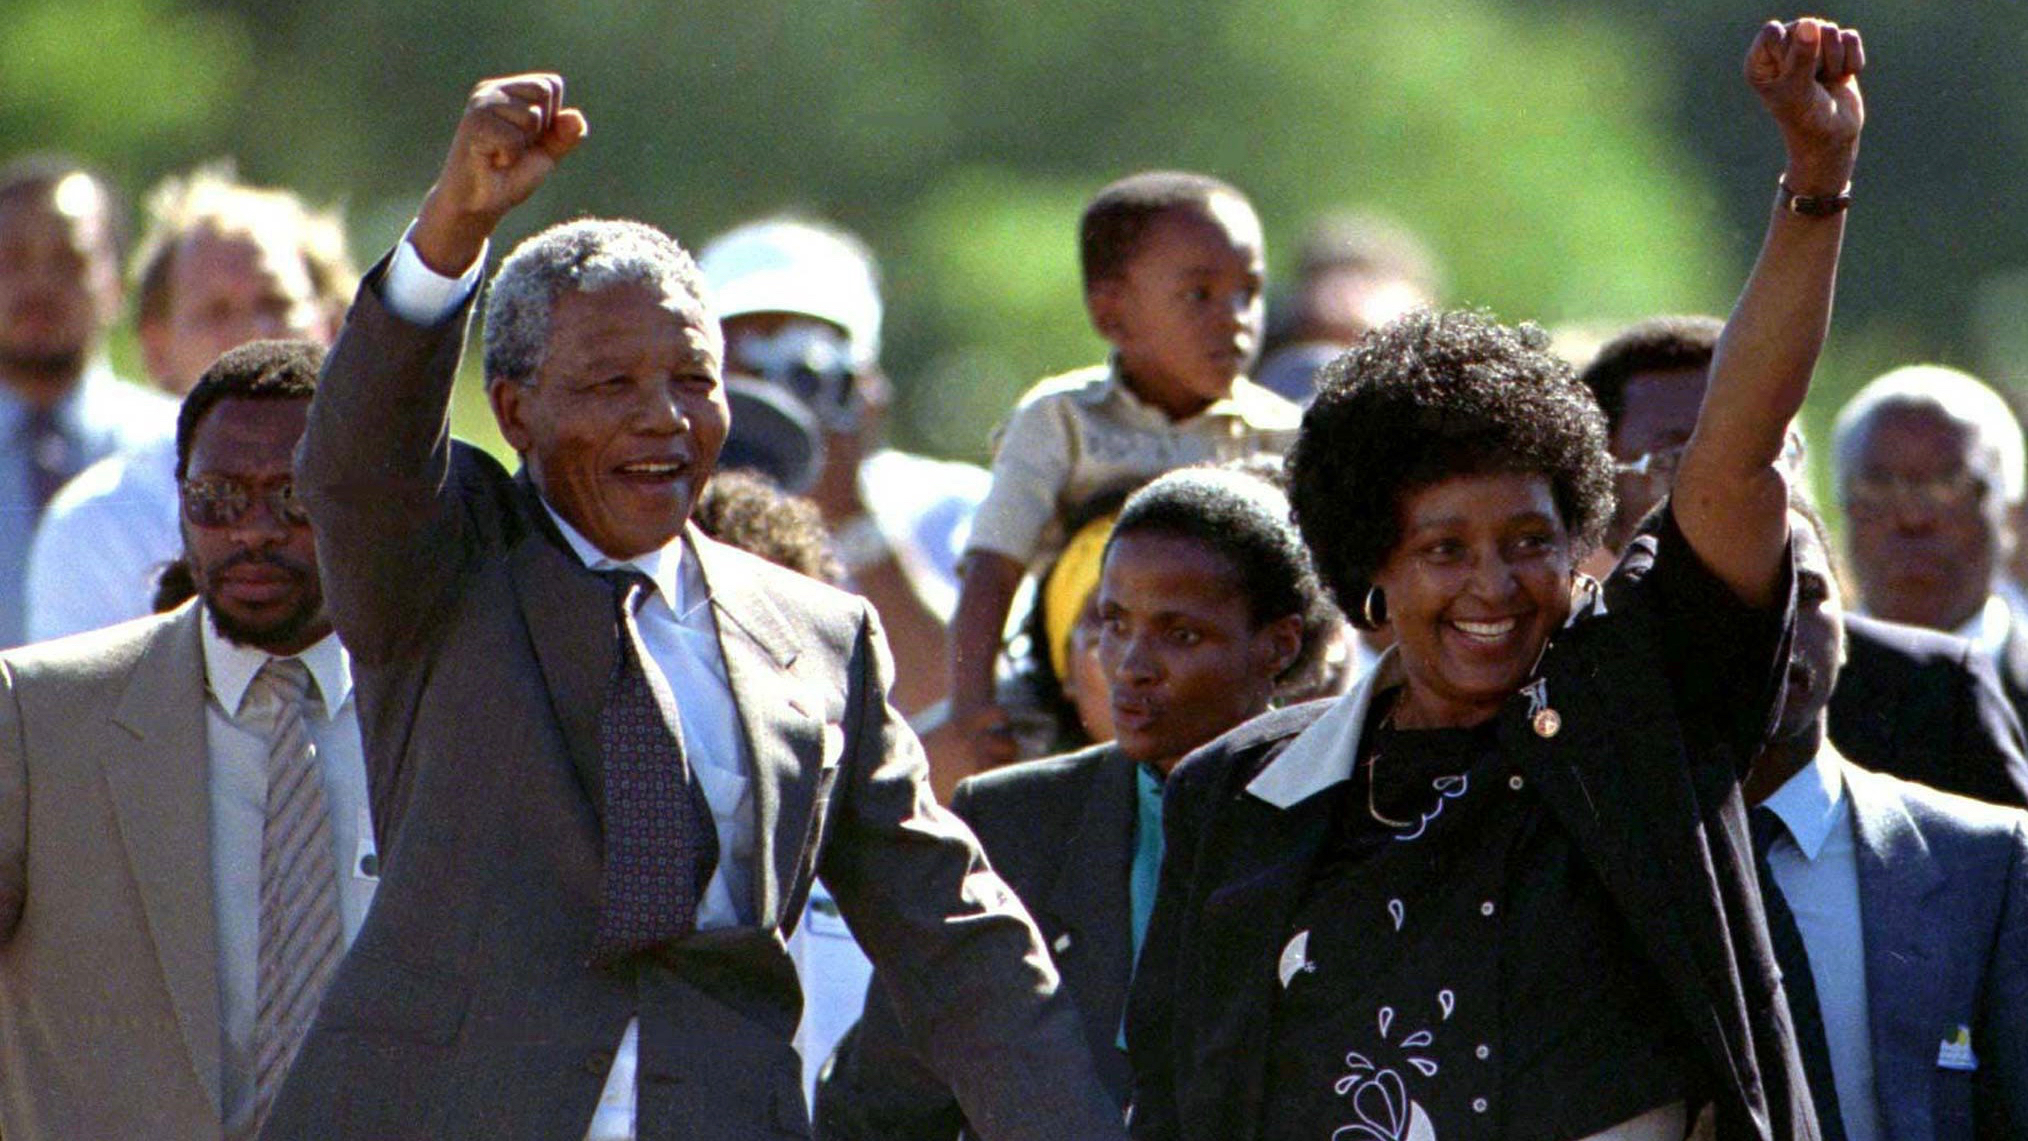 Nelson Mandela (front L), accompanied by his wife Winnie, walks out of the Victor Verster prison, near Cape Town, after spending 27 years in apartheid jails on February 11, 1990. REUTERS/Ulli Michel - RTR144Z